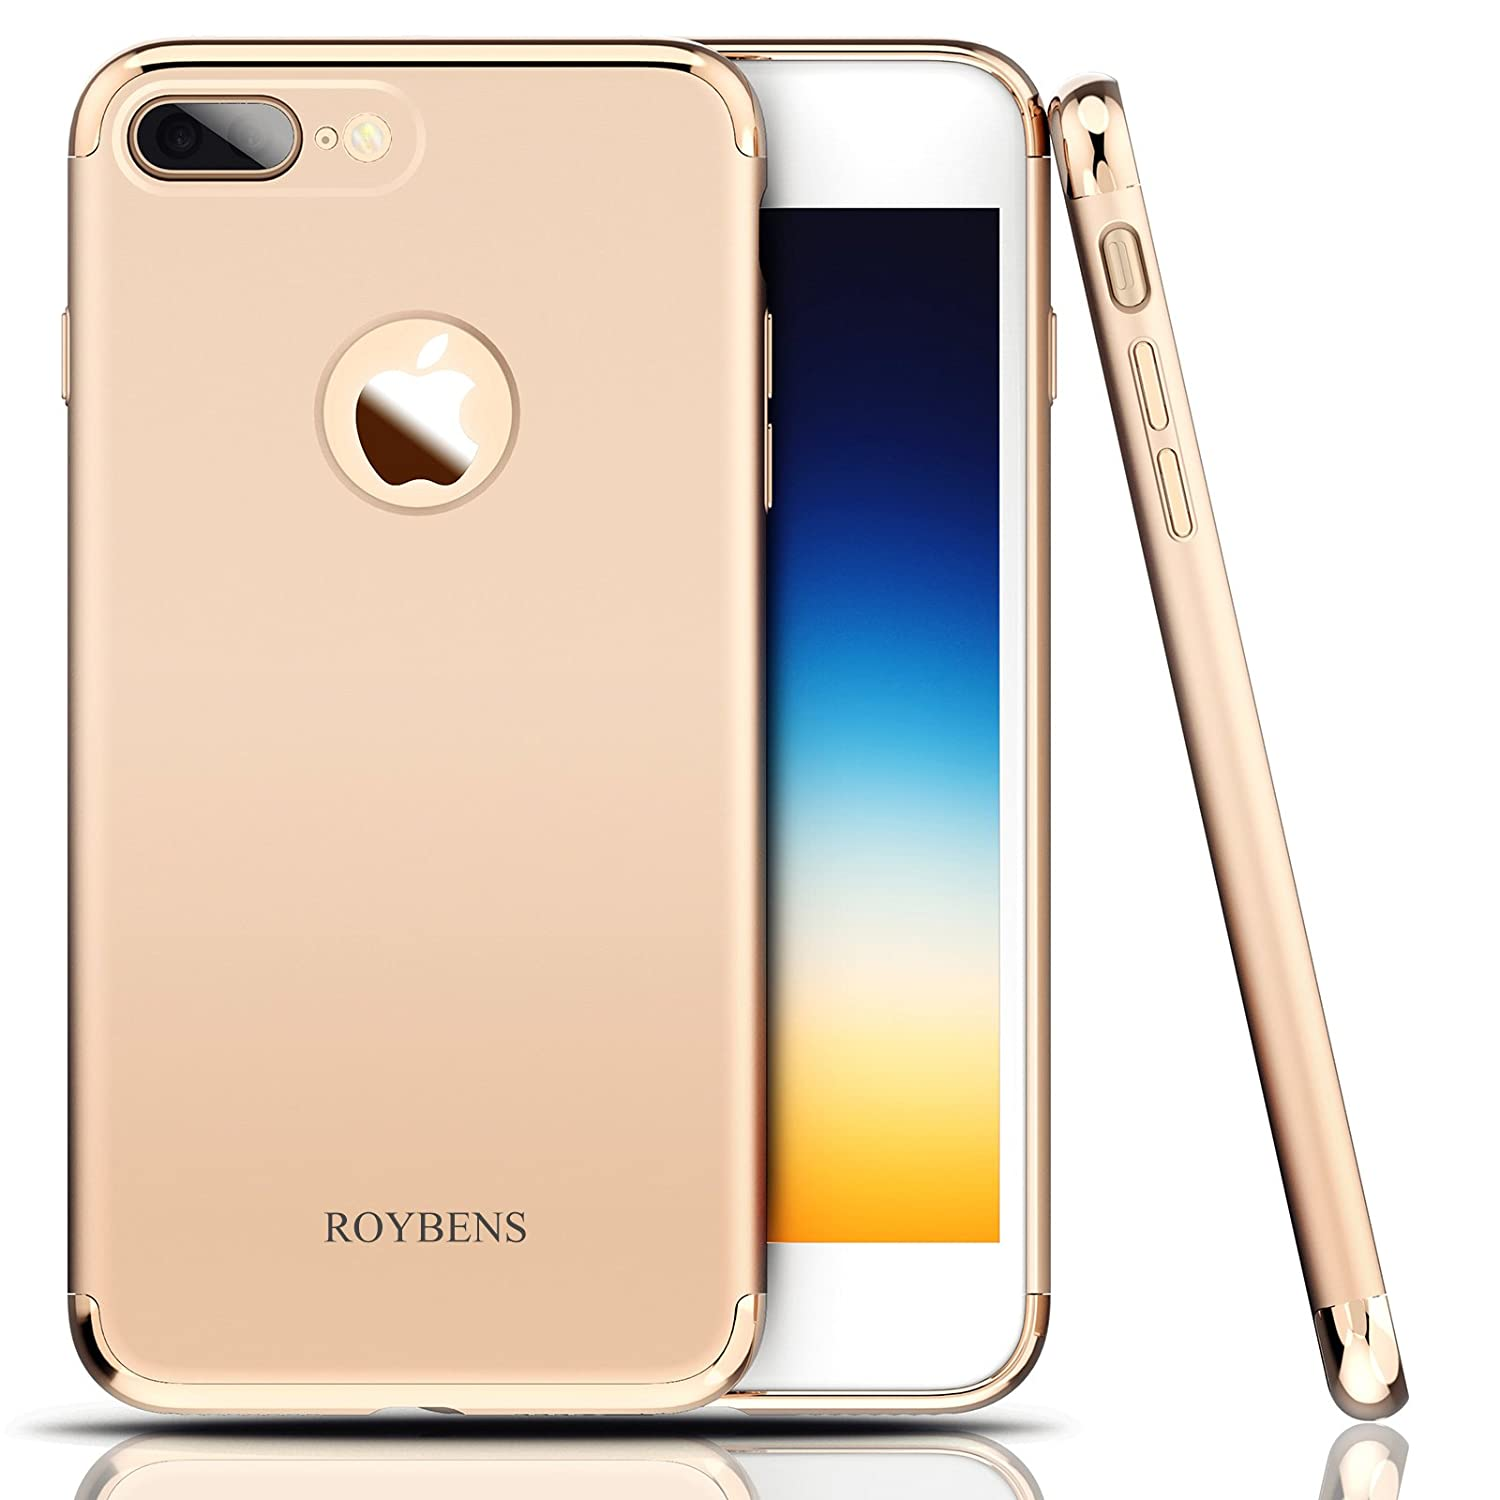 58c274dae1 Amazon.com: iPhone 7 Plus Case, Roybens; 3 In 1 Ultra Thin and Slim Hard  Case Coated Non Slip Matte Anti-Scratch Anti-fingerprint Shockproof Surface  with .